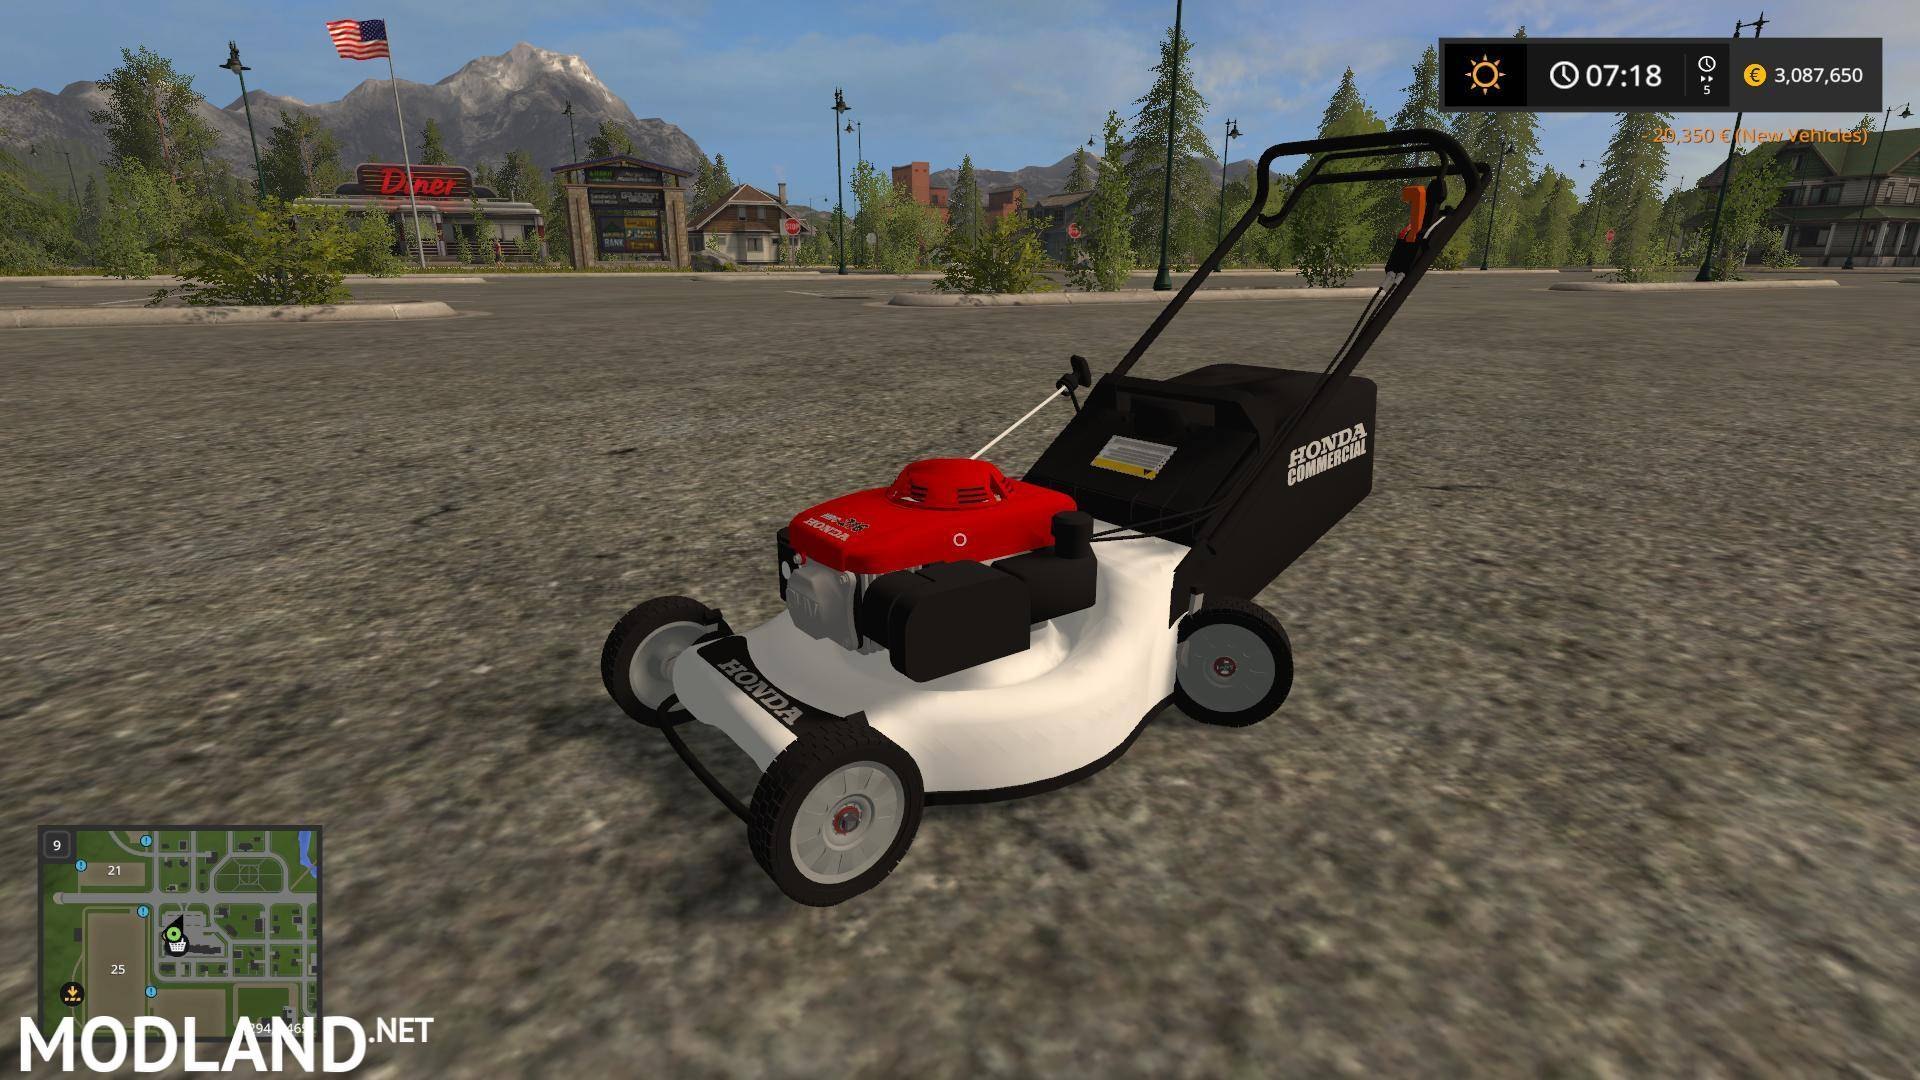 Replay Gamingu0027s Honda Push Mower V 1.0, ...